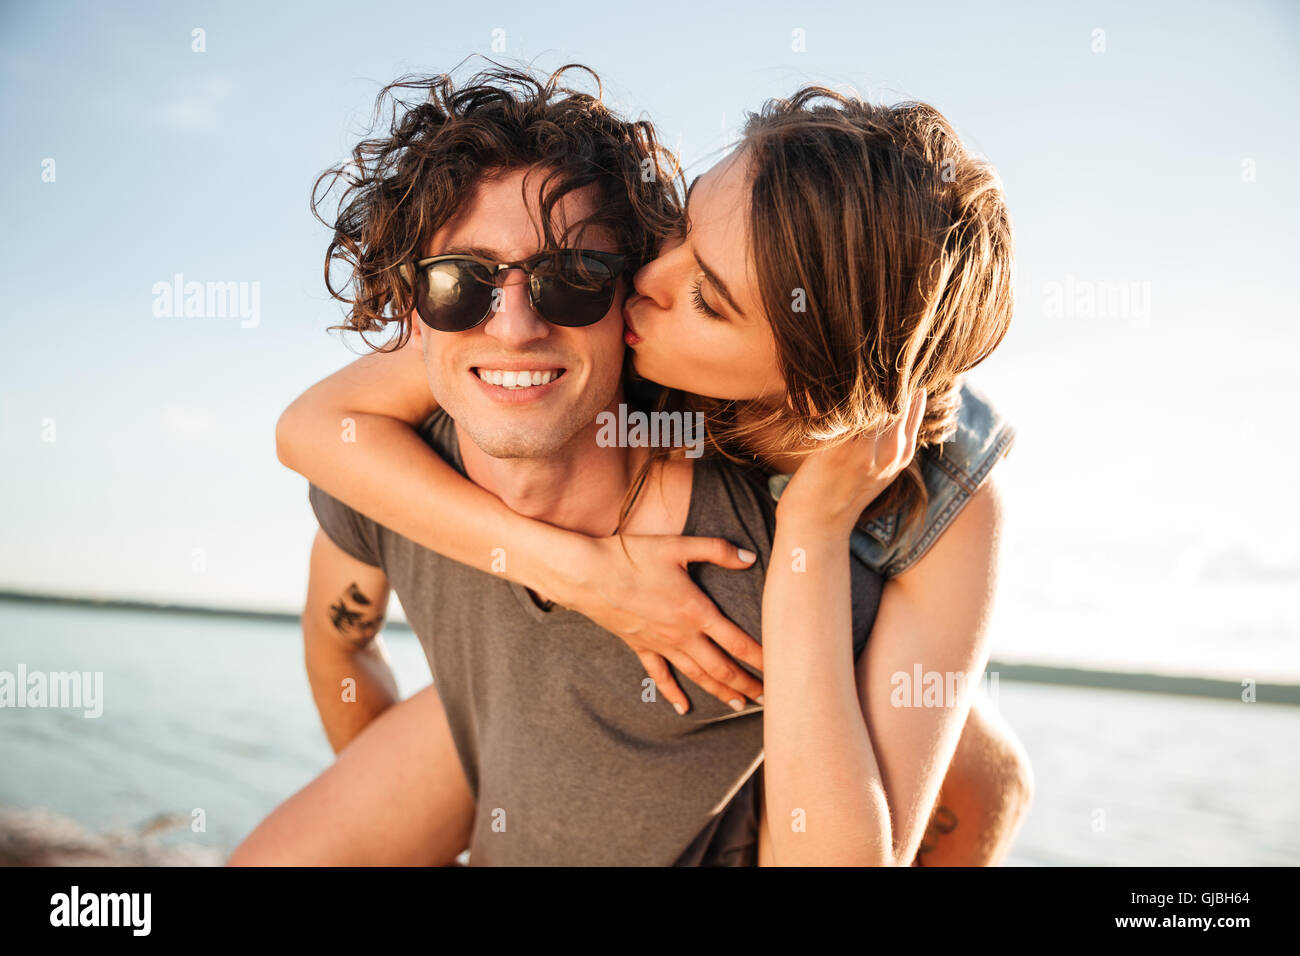 Young man giving piggyback ride to girlfriend by the ocean Stock Photo